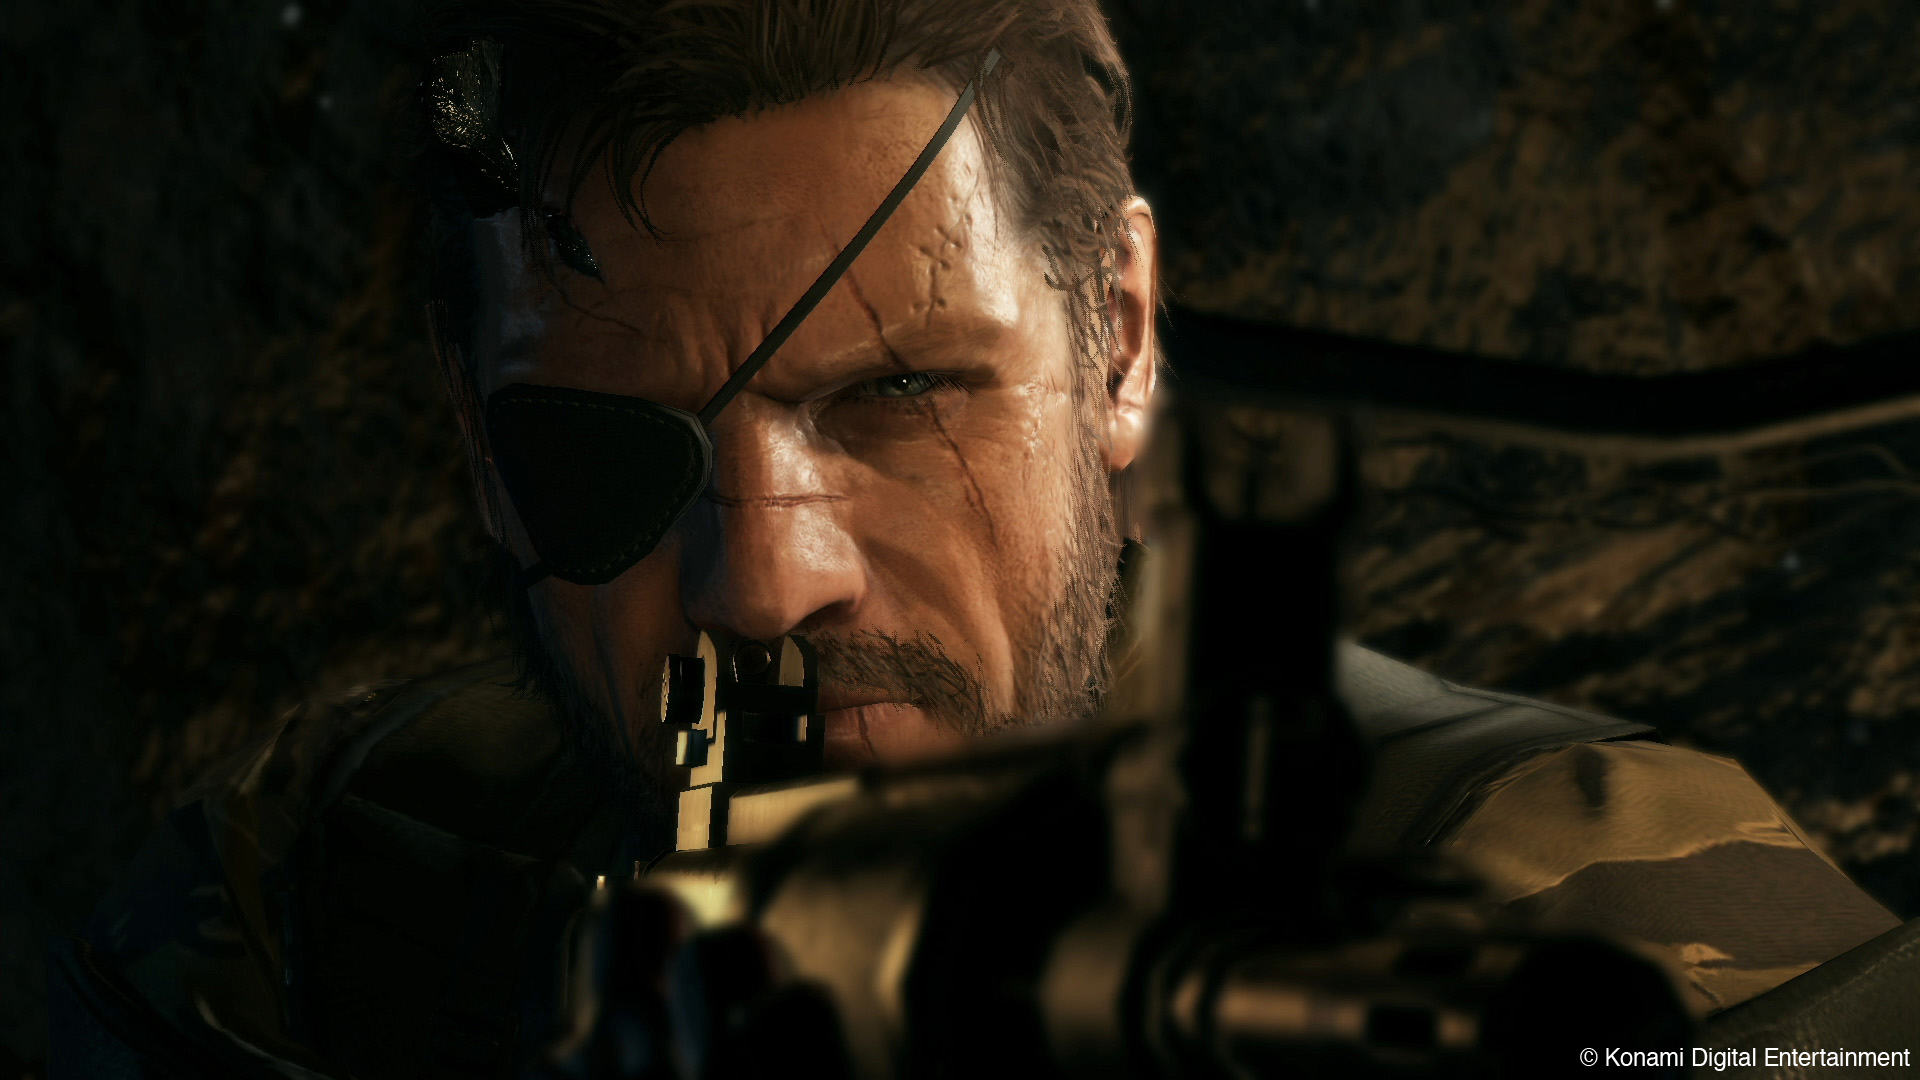 The phantom pain release date in Australia